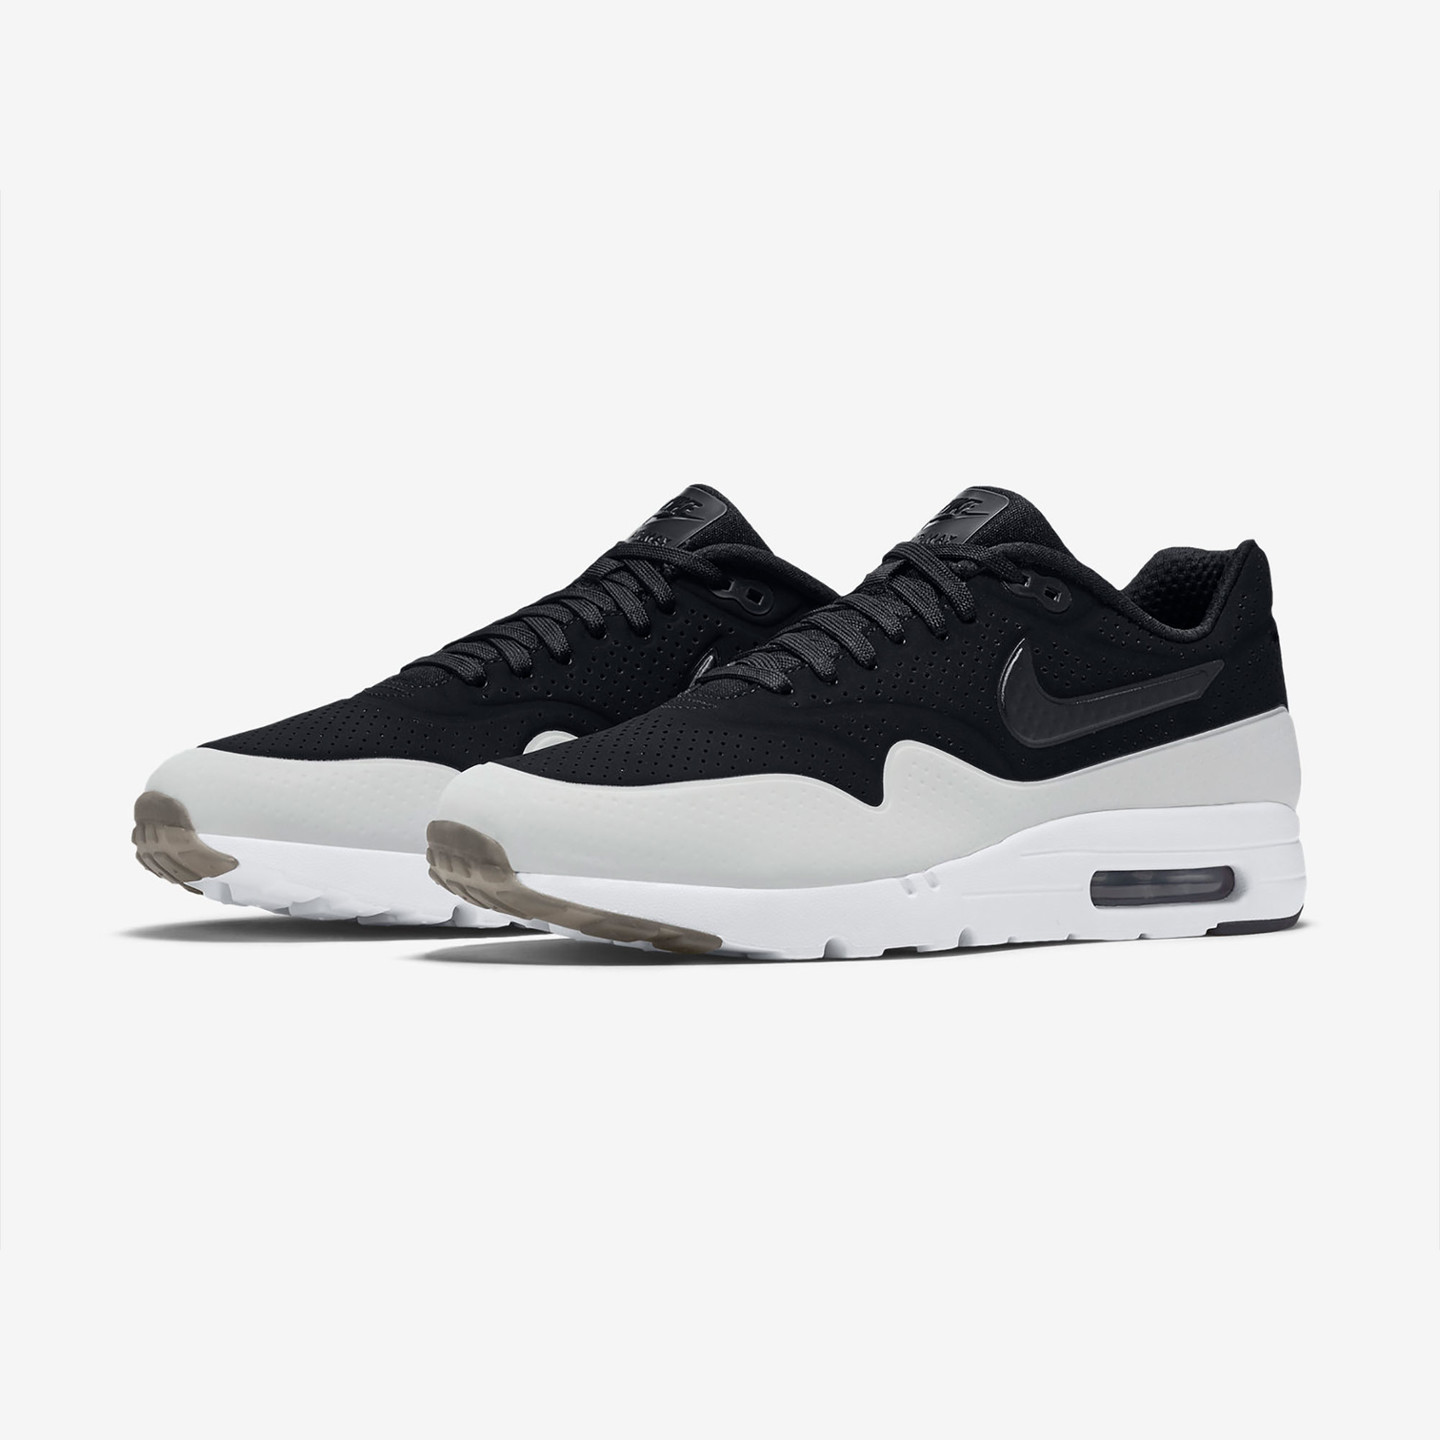 Nike Air Max 1 Ultra Moire Black / White 705297-011-44.5